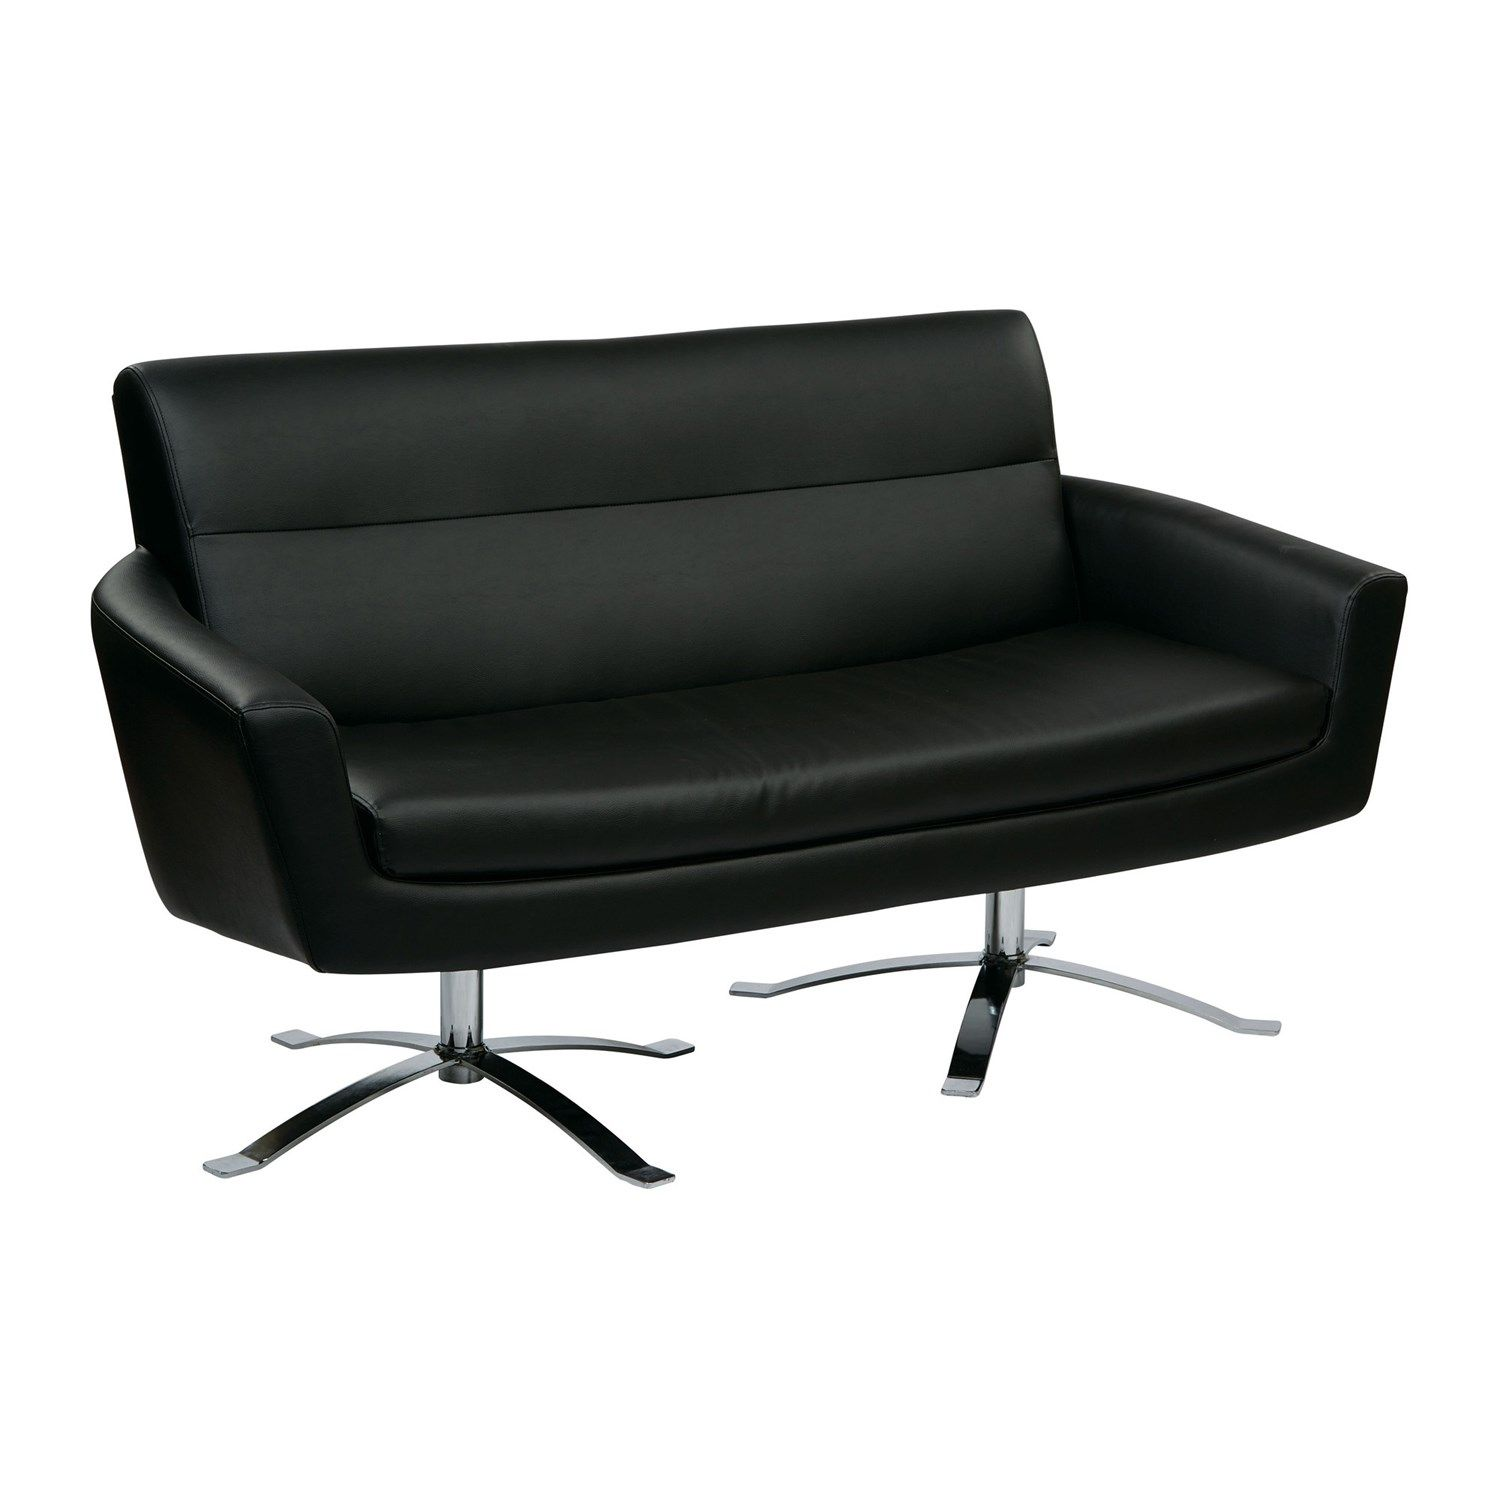 Genial Office Star NVA52 Nova Faux Leather Loveseat